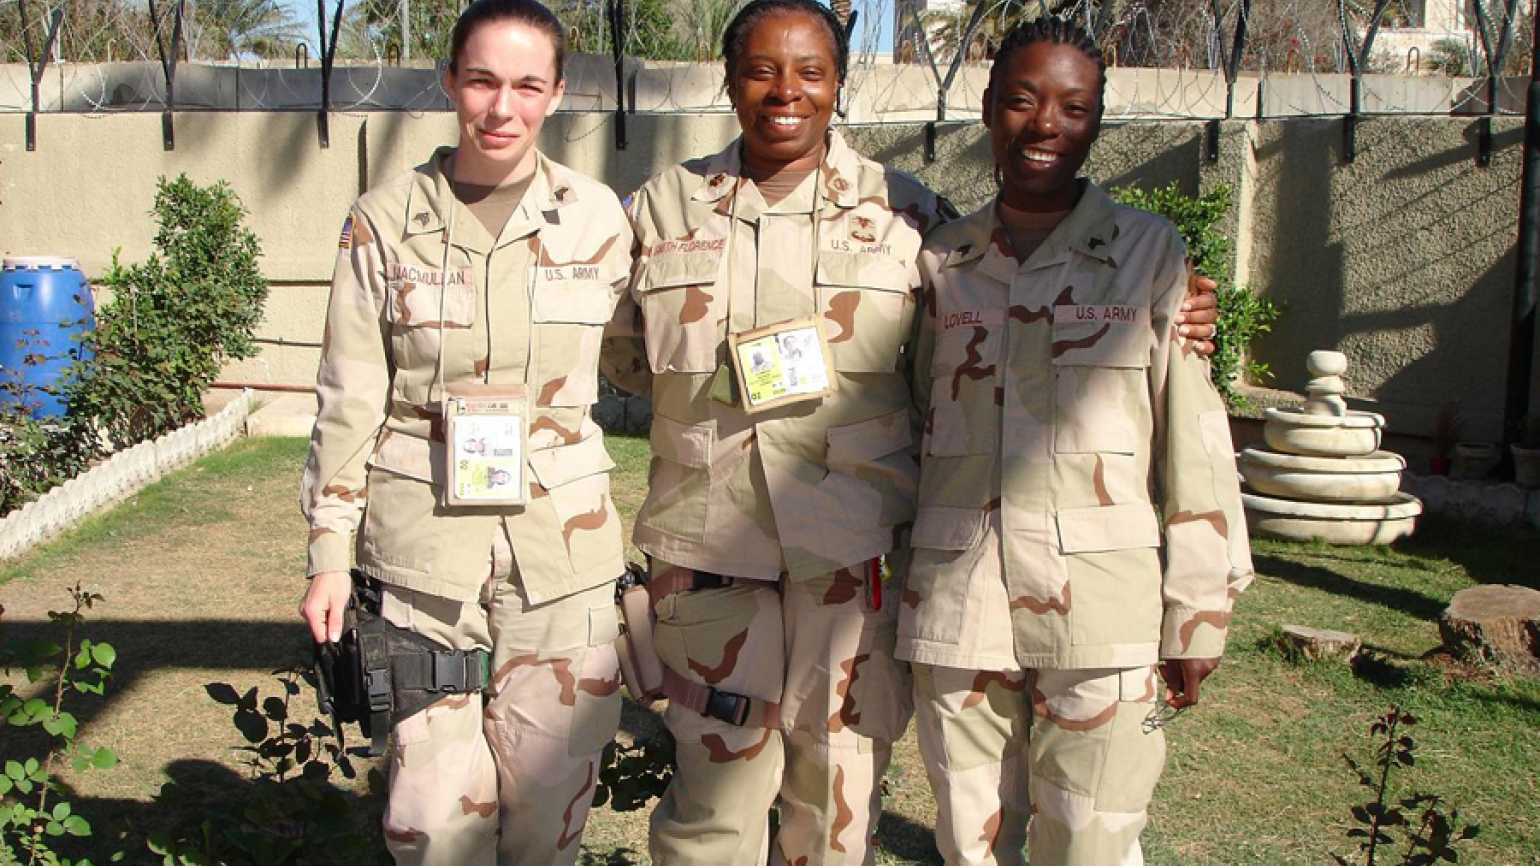 Lt. Col. Evelyn Smith-Florence, U. S. Army (Ret.--center), mother of Guideposts editorial coordinator T. J. Barber